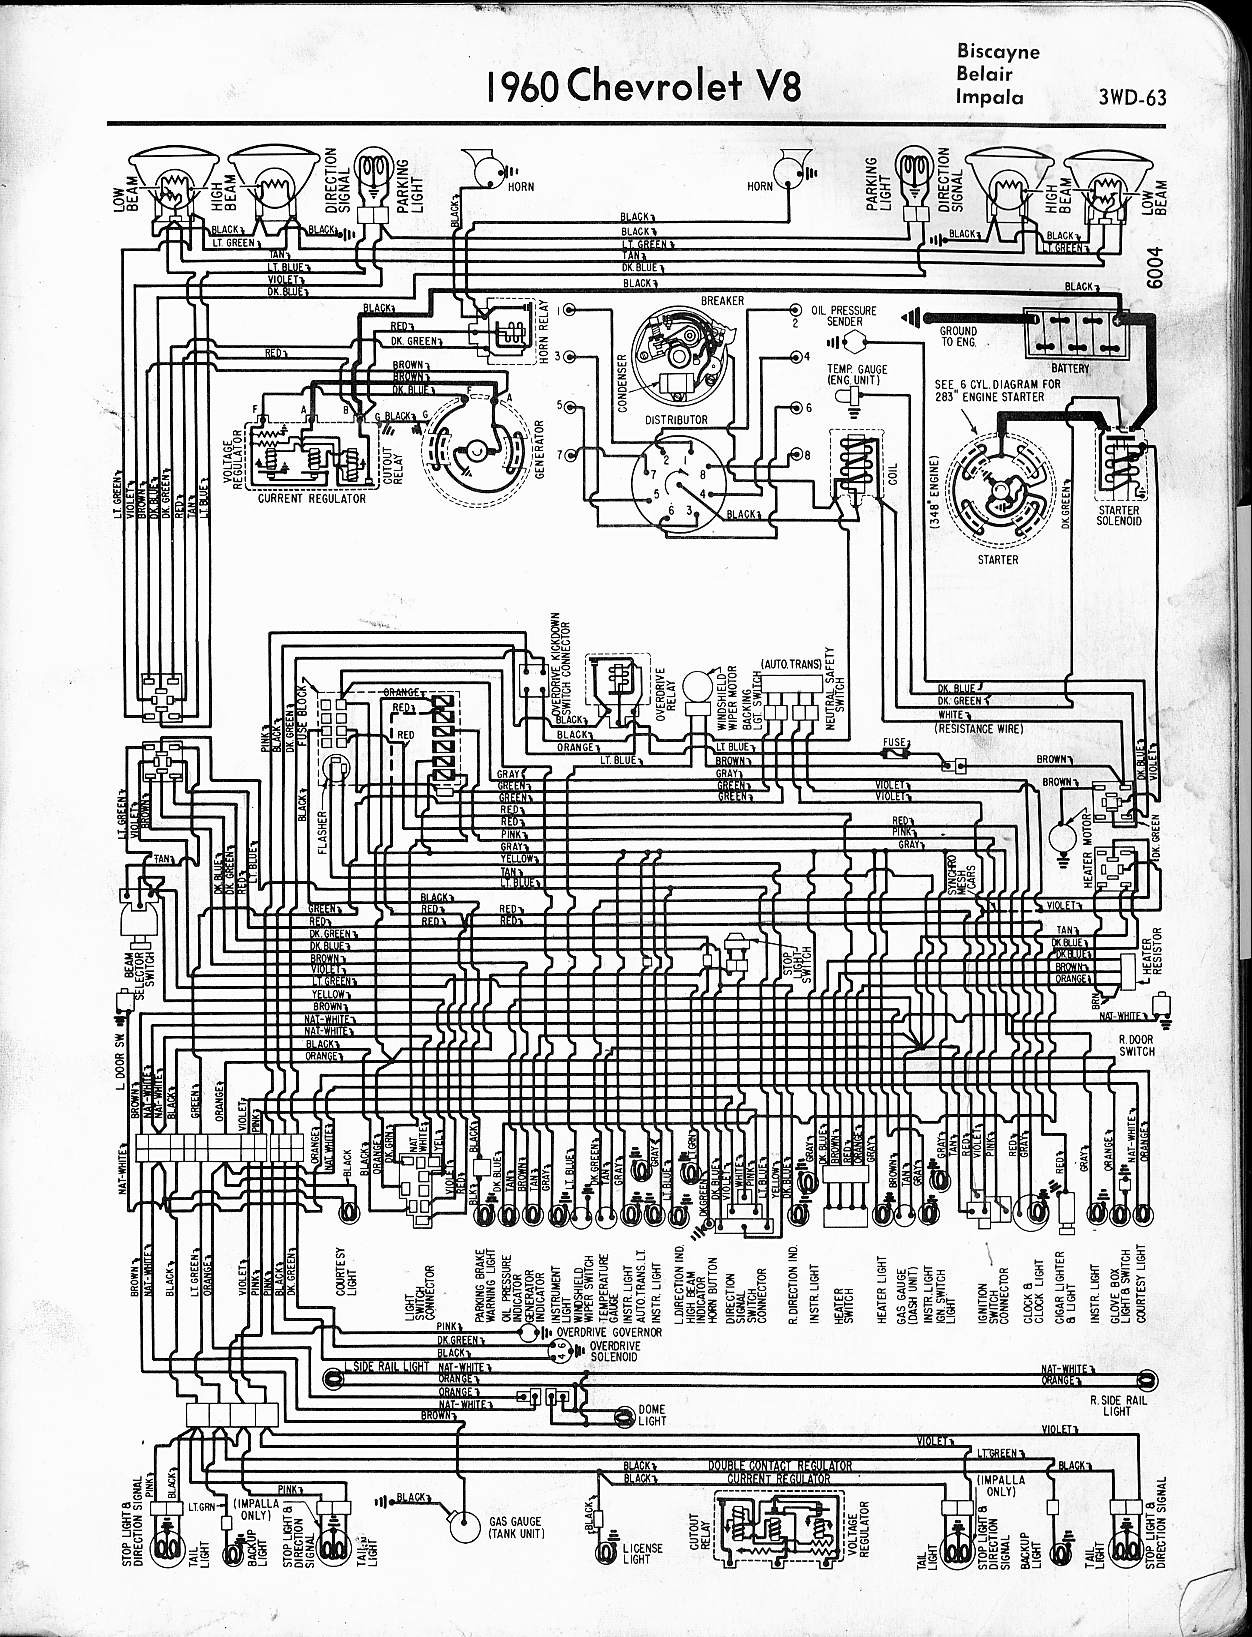 How Does A Engine Work Diagram Tower Ac Wiring New Hvac 57 65 Chevy Diagrams Of